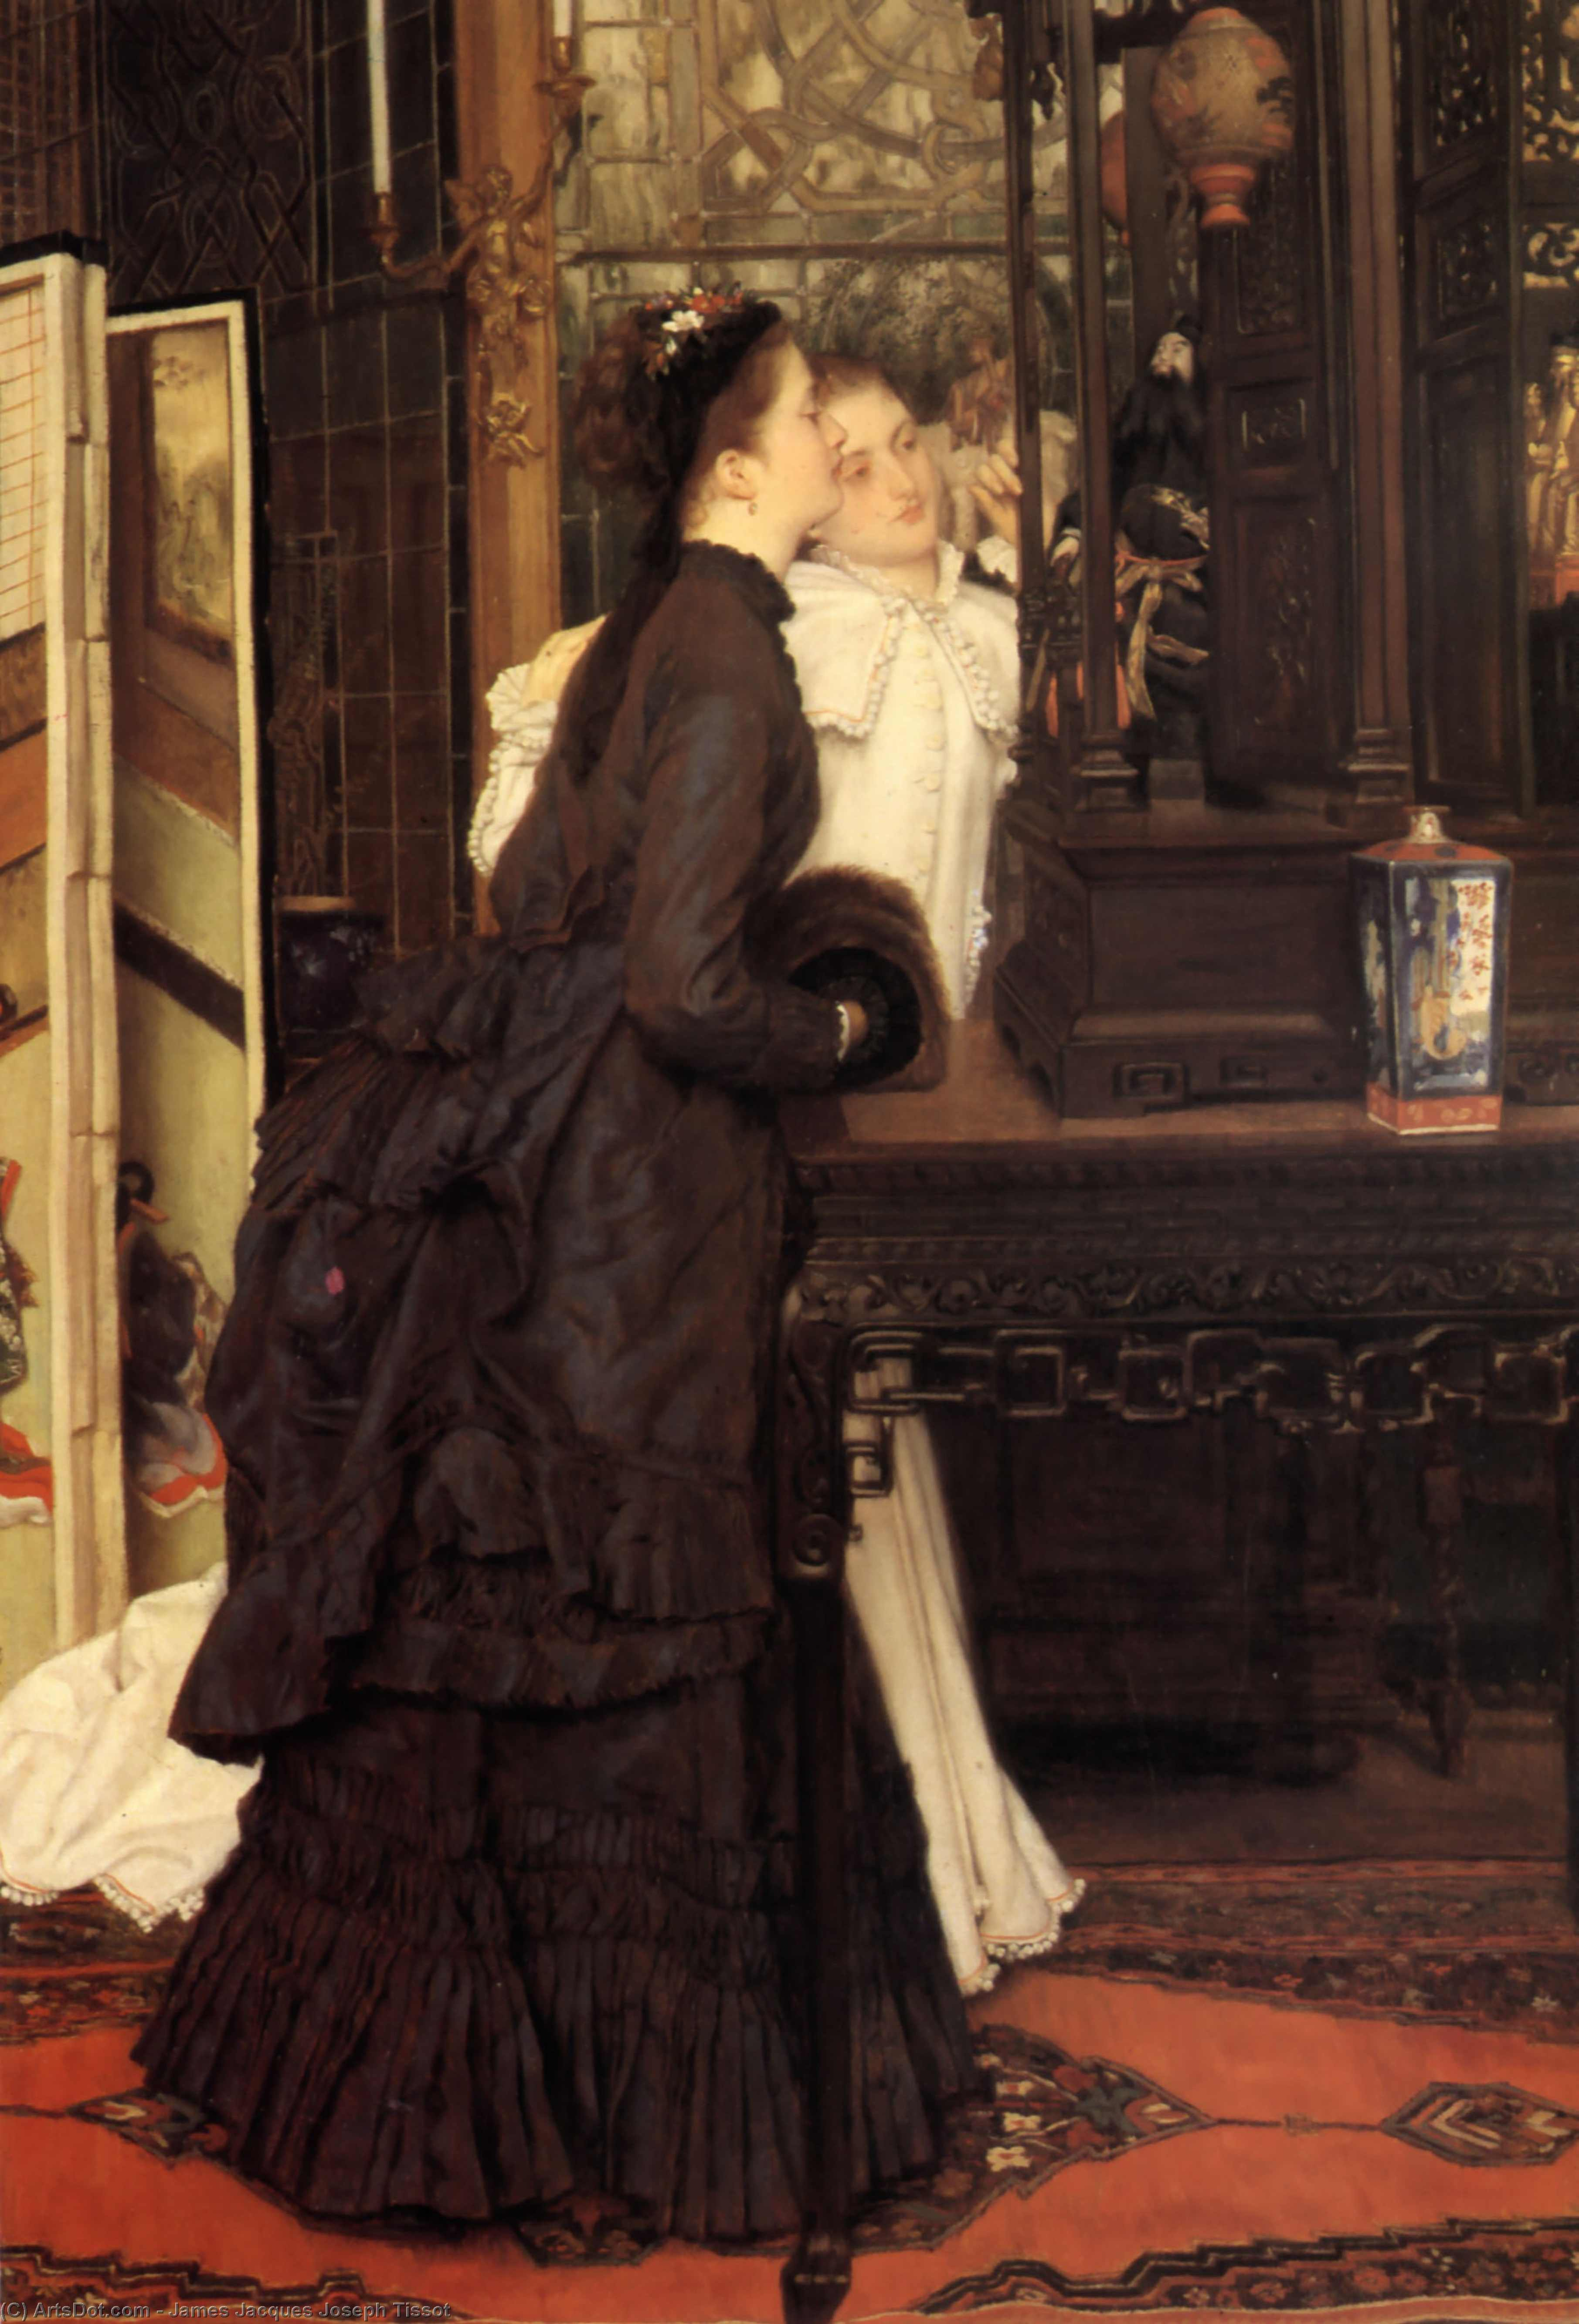 Wikioo.org - The Encyclopedia of Fine Arts - Painting, Artwork by James Jacques Joseph Tissot - Young Ladies Looking at Japanese Objects